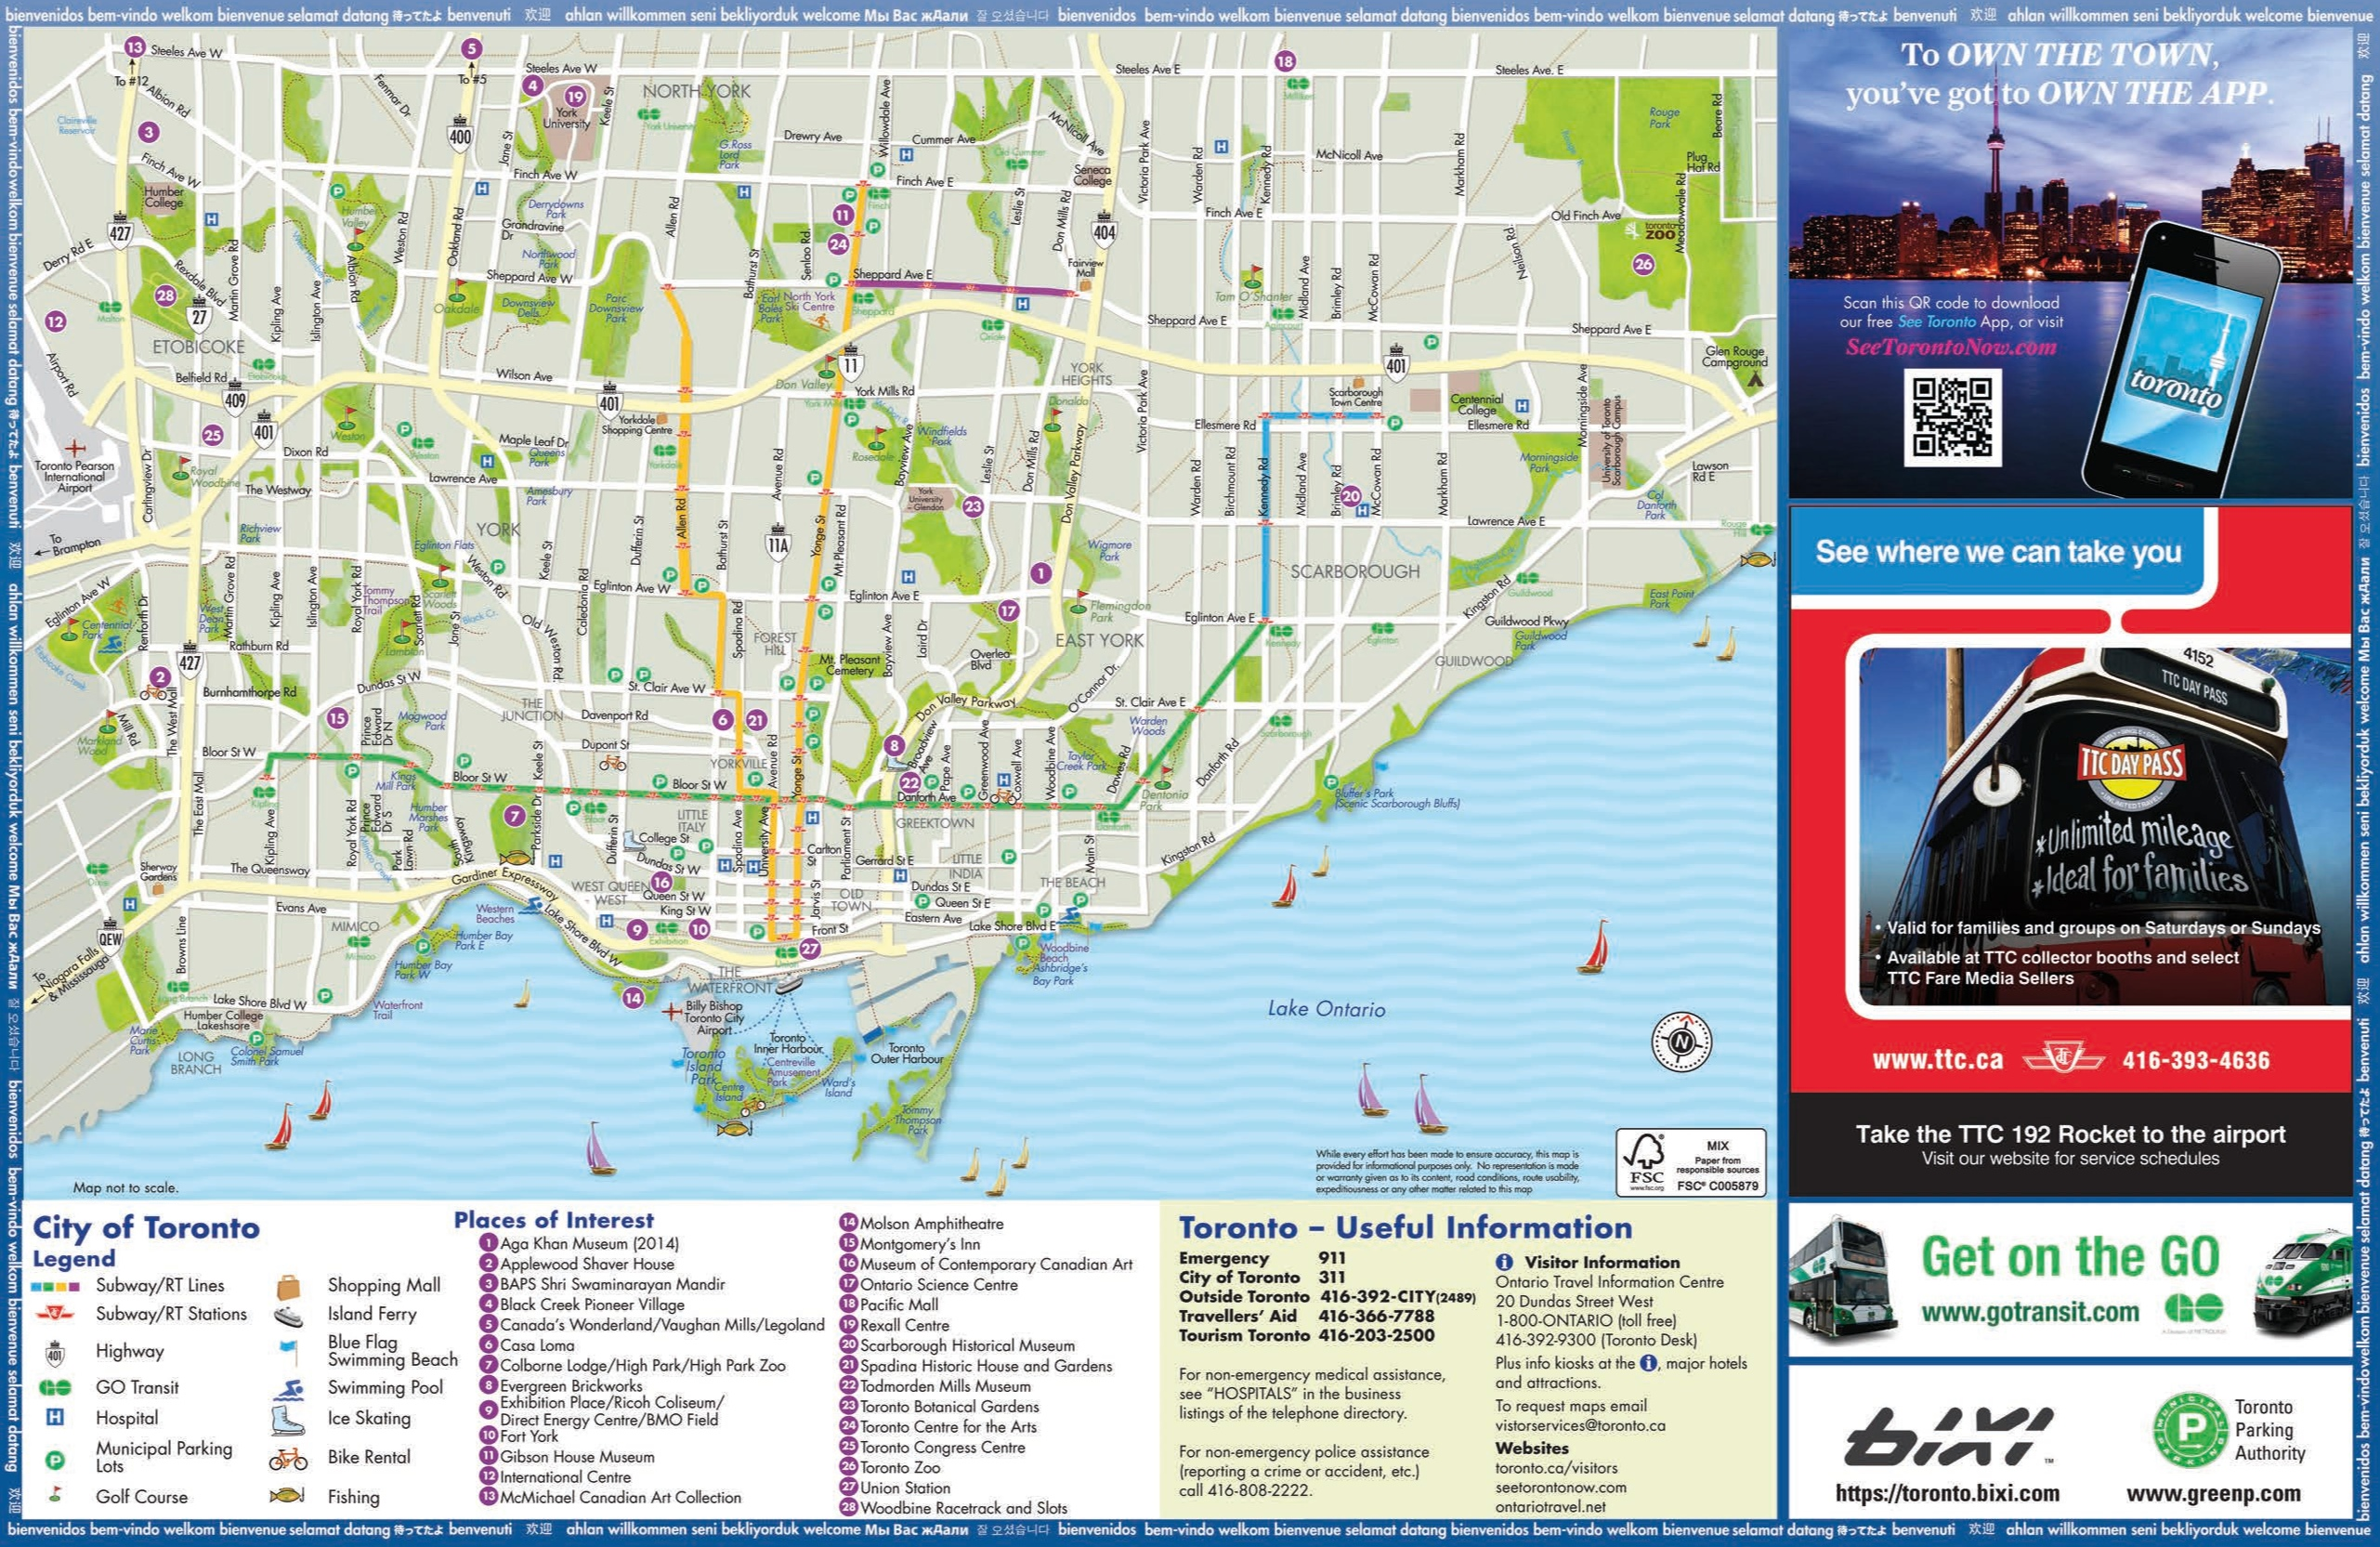 Toronto tourist attractions map